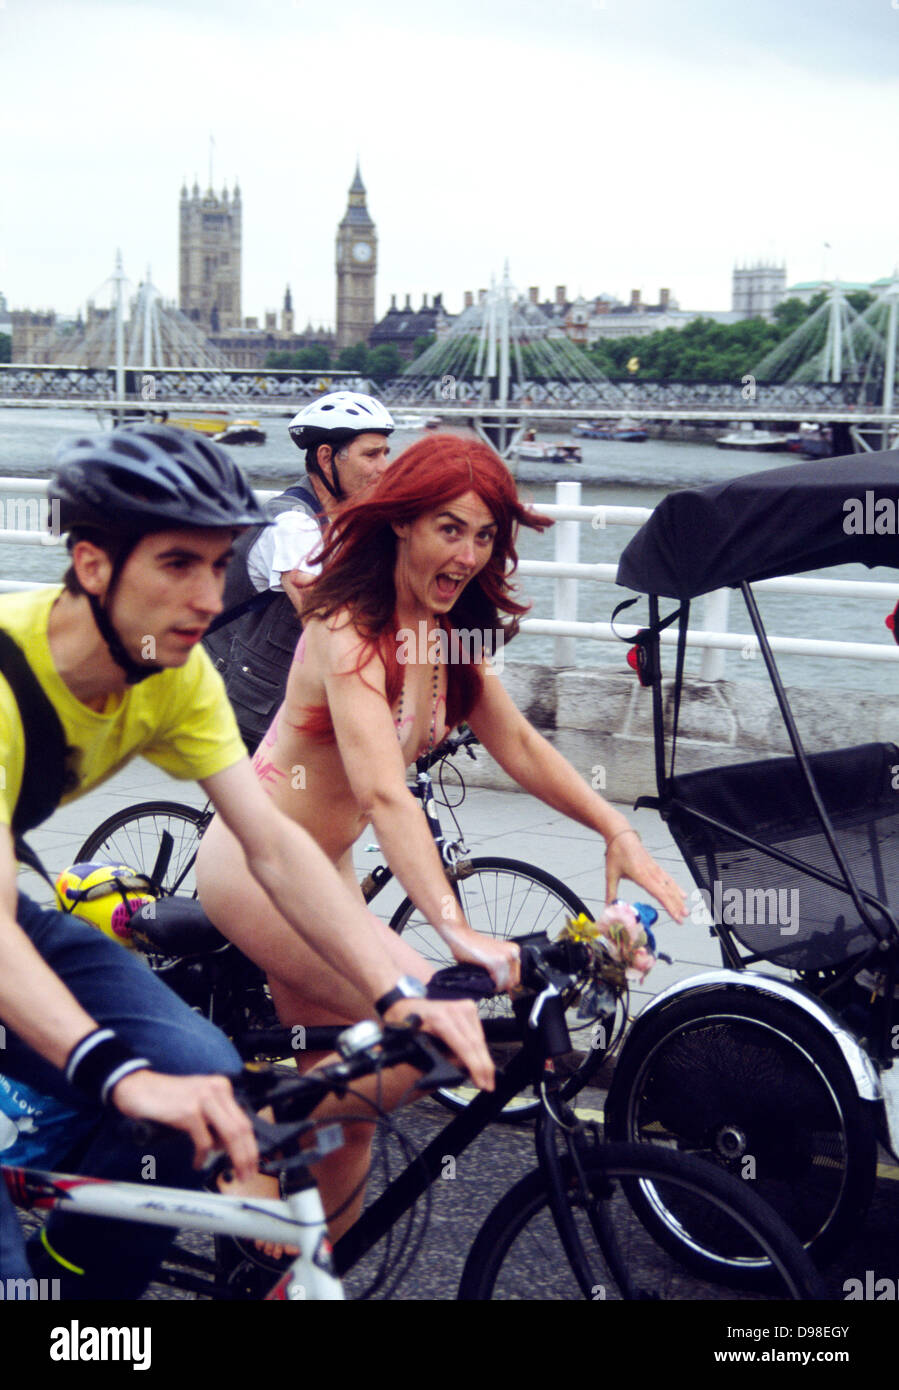 Naked Woman Cycling Between Two Clothed Men on Westminster Bridge, World Naked  Bike Ride, London, England